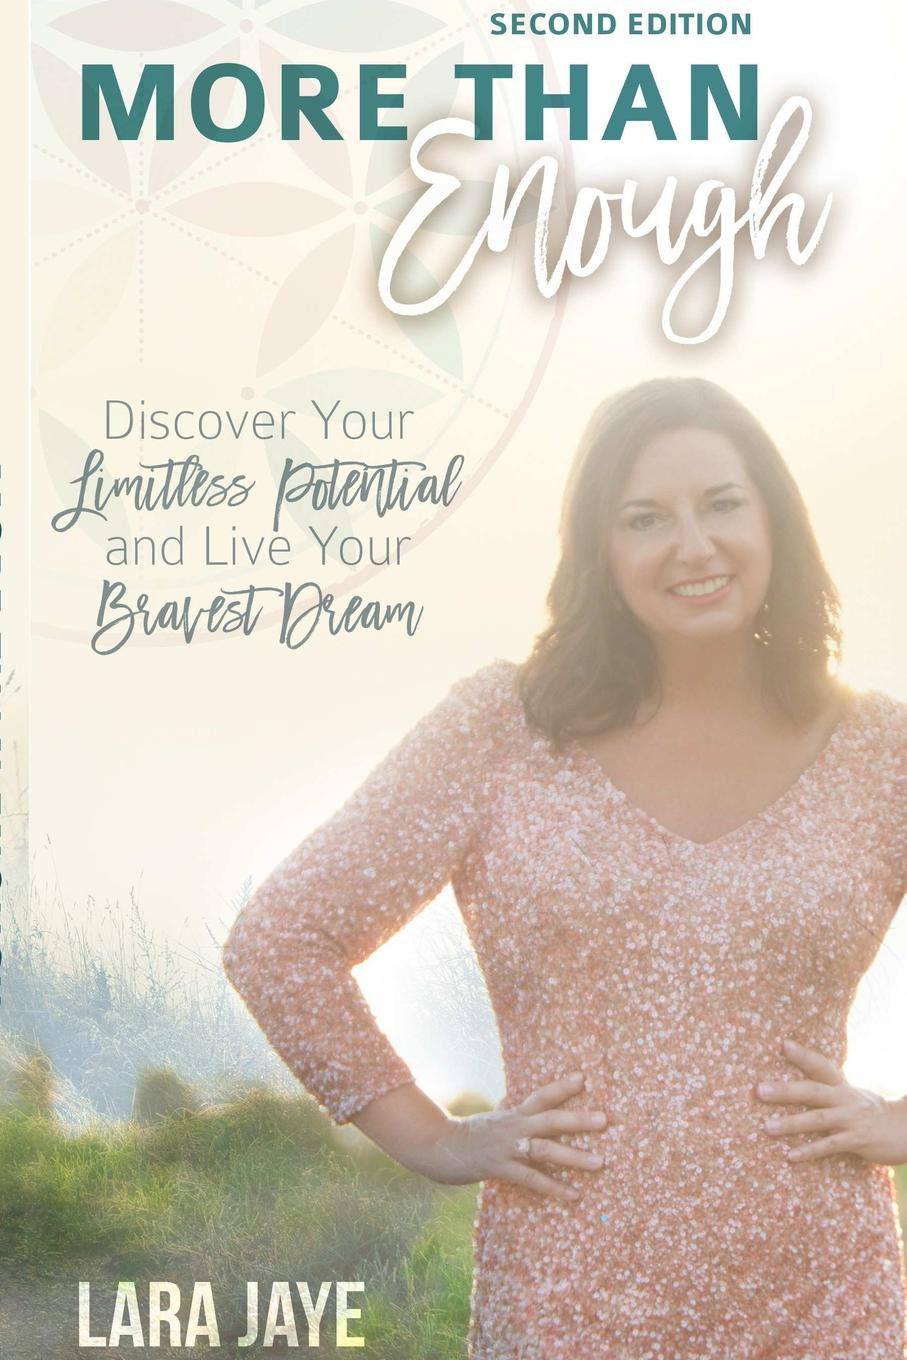 More Than Enough. Discover Your Limitless Potential and Live Your Bravest Dream. Second Edition